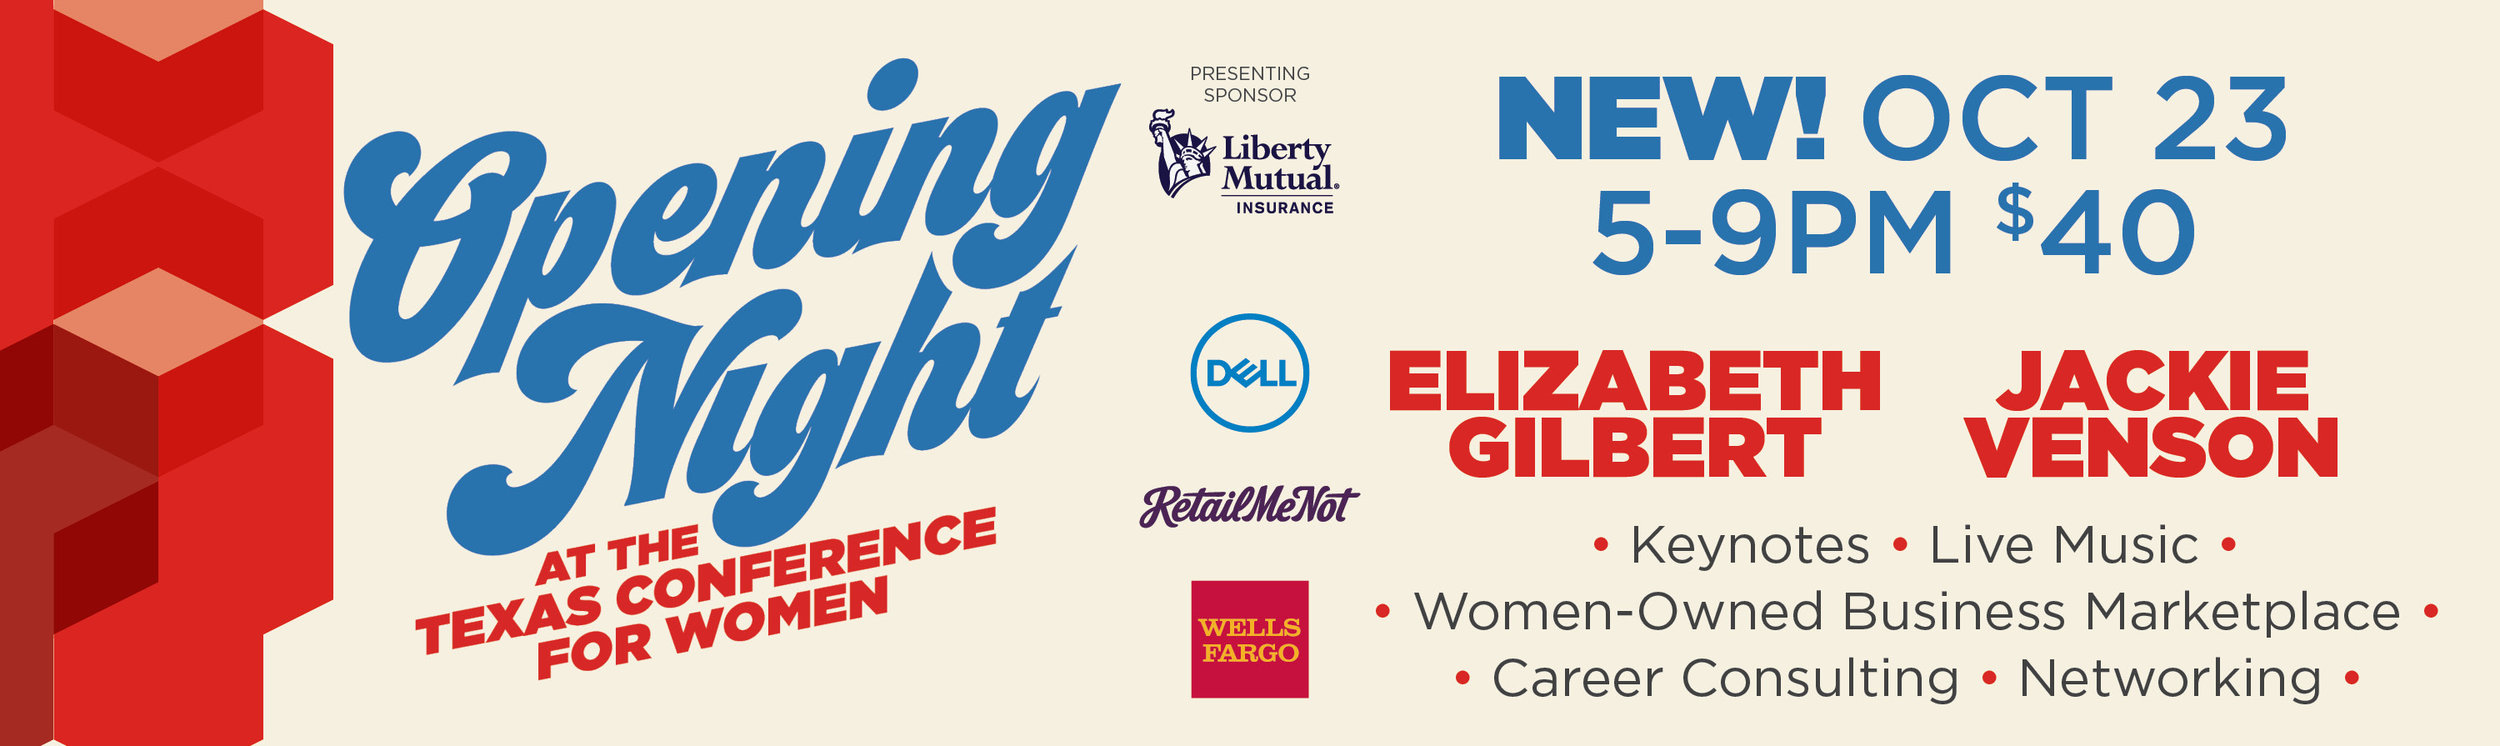 Texas Conference for Women Opening Night